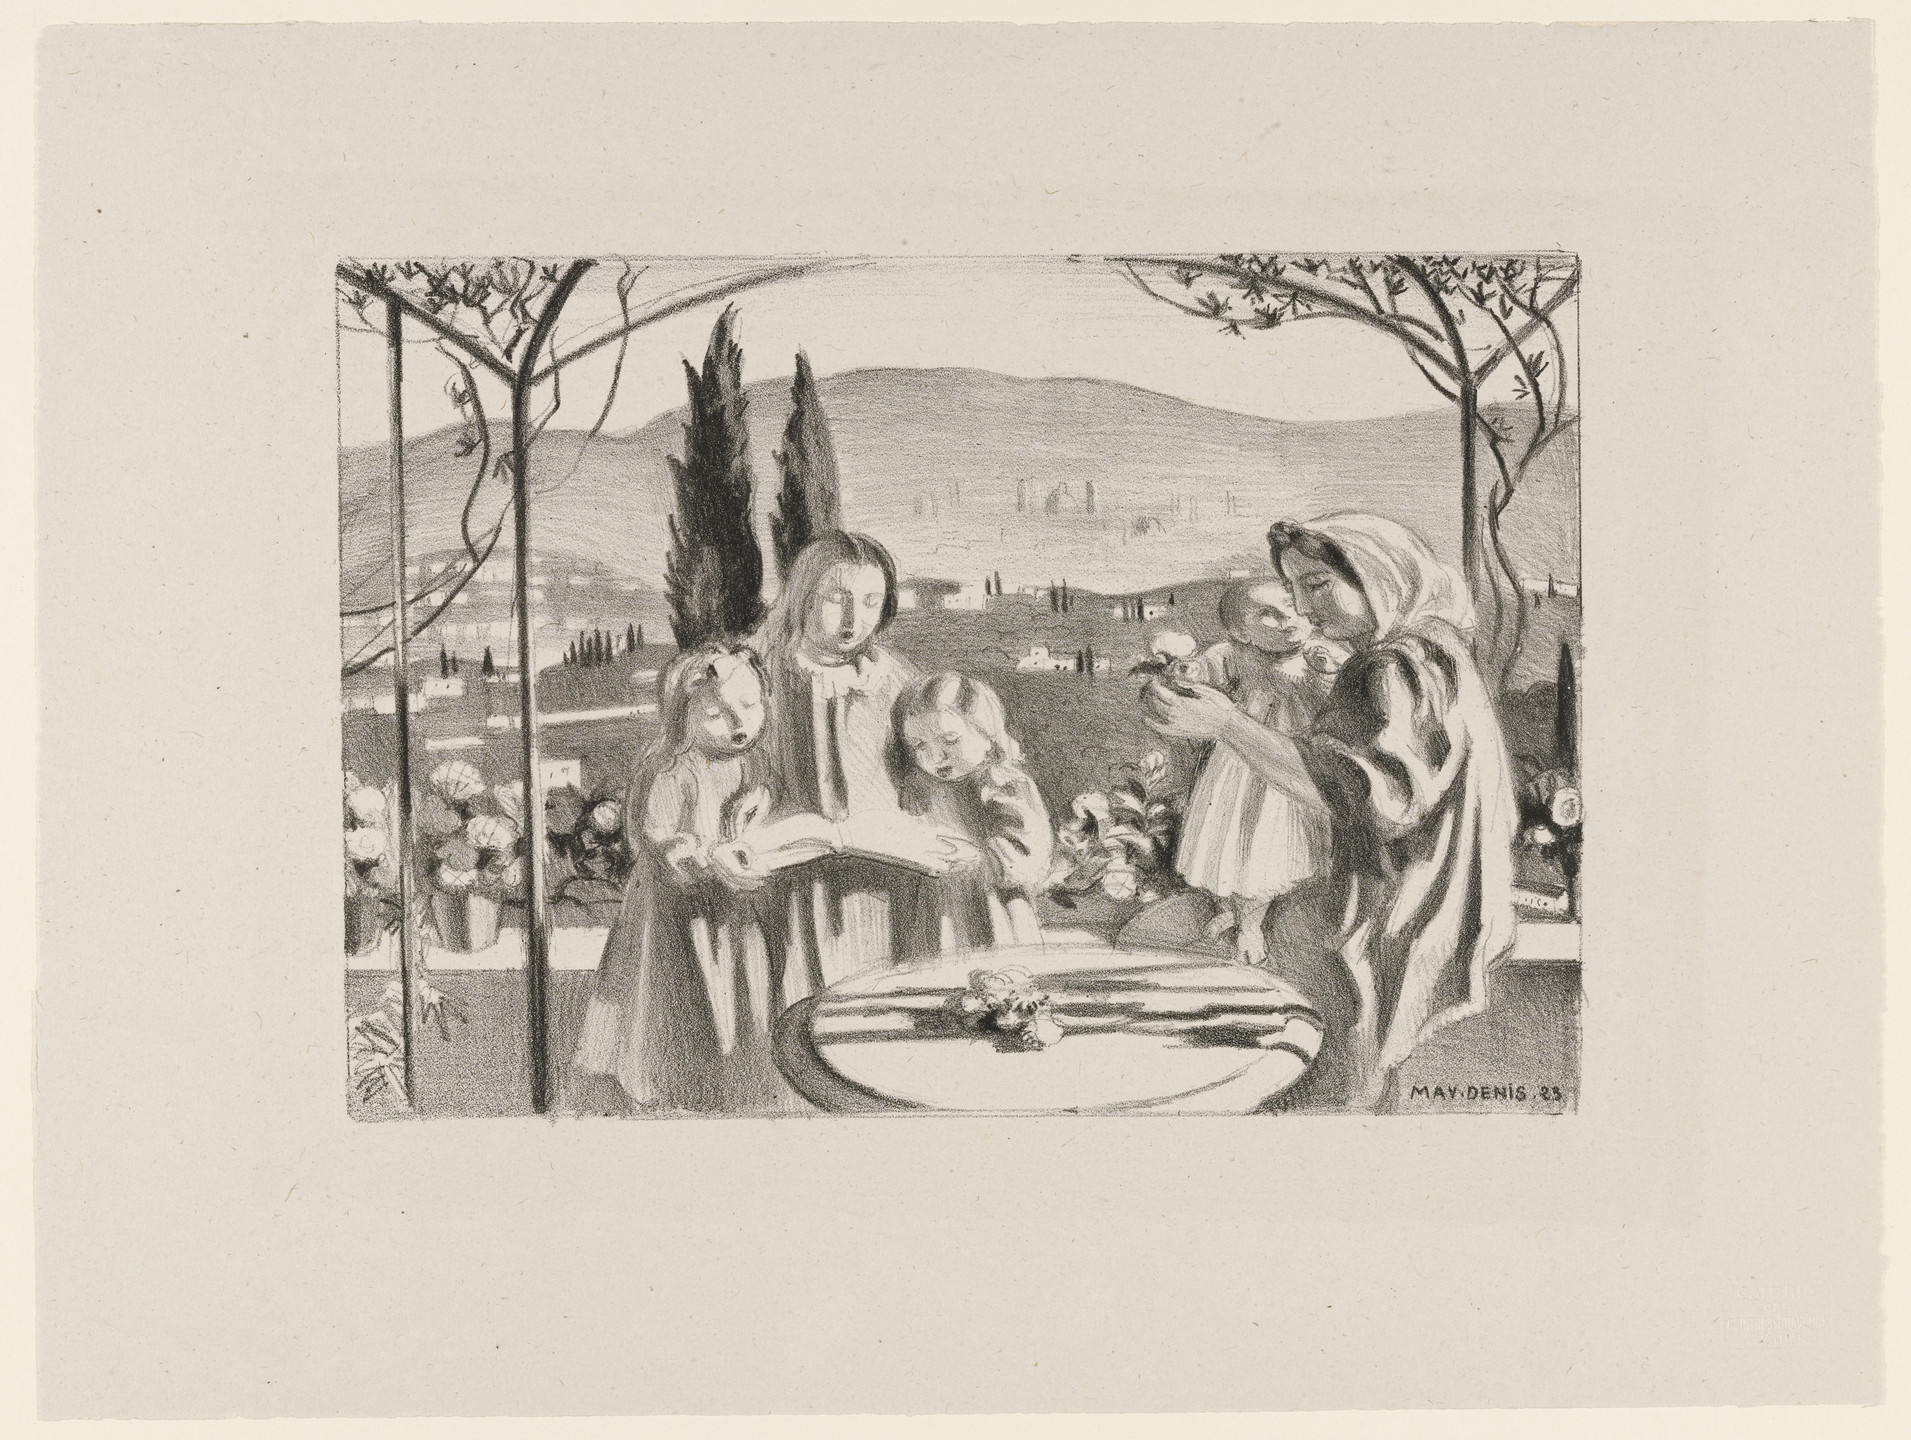 Maurice Denis. La Terrasse (The Terrace) from Essai dur l'histoire de la lithographie en France. Les Peintures lithographes de Manet à Matisse. Album de lithographies originales.. 1923, published c. 1924